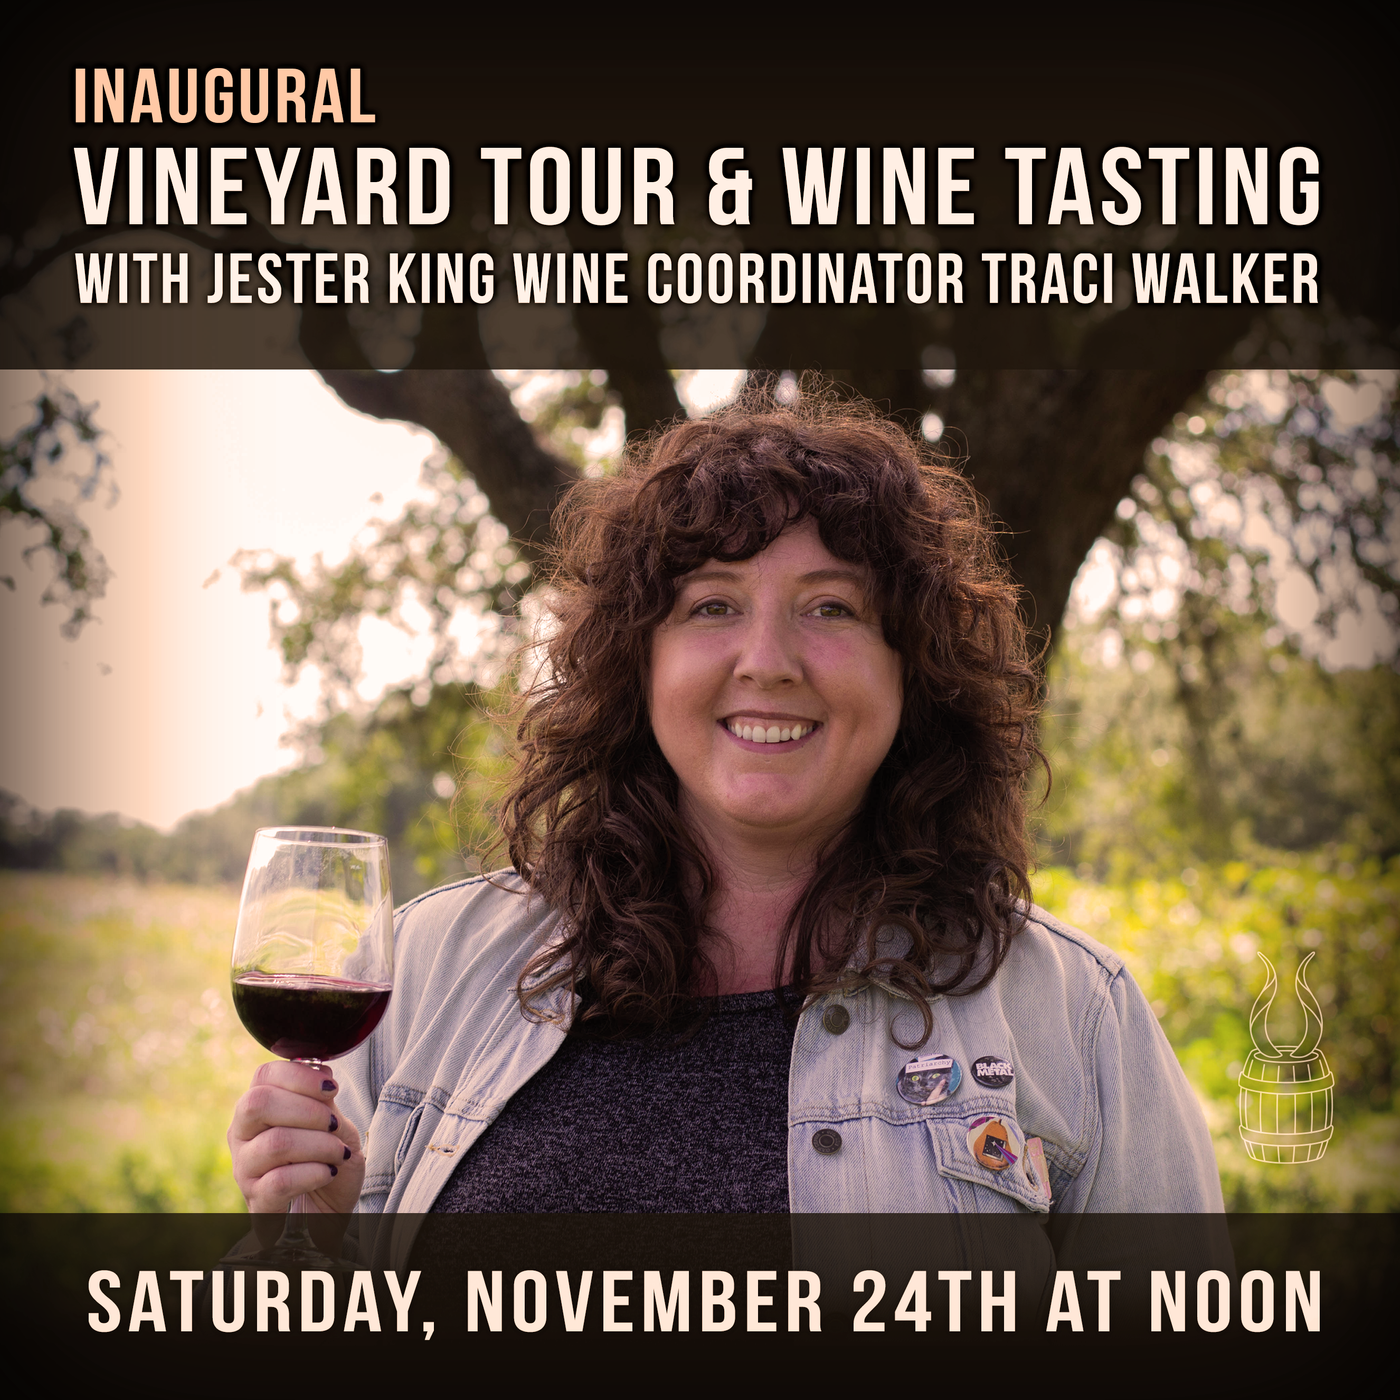 Wine_tour_announcement (1).png